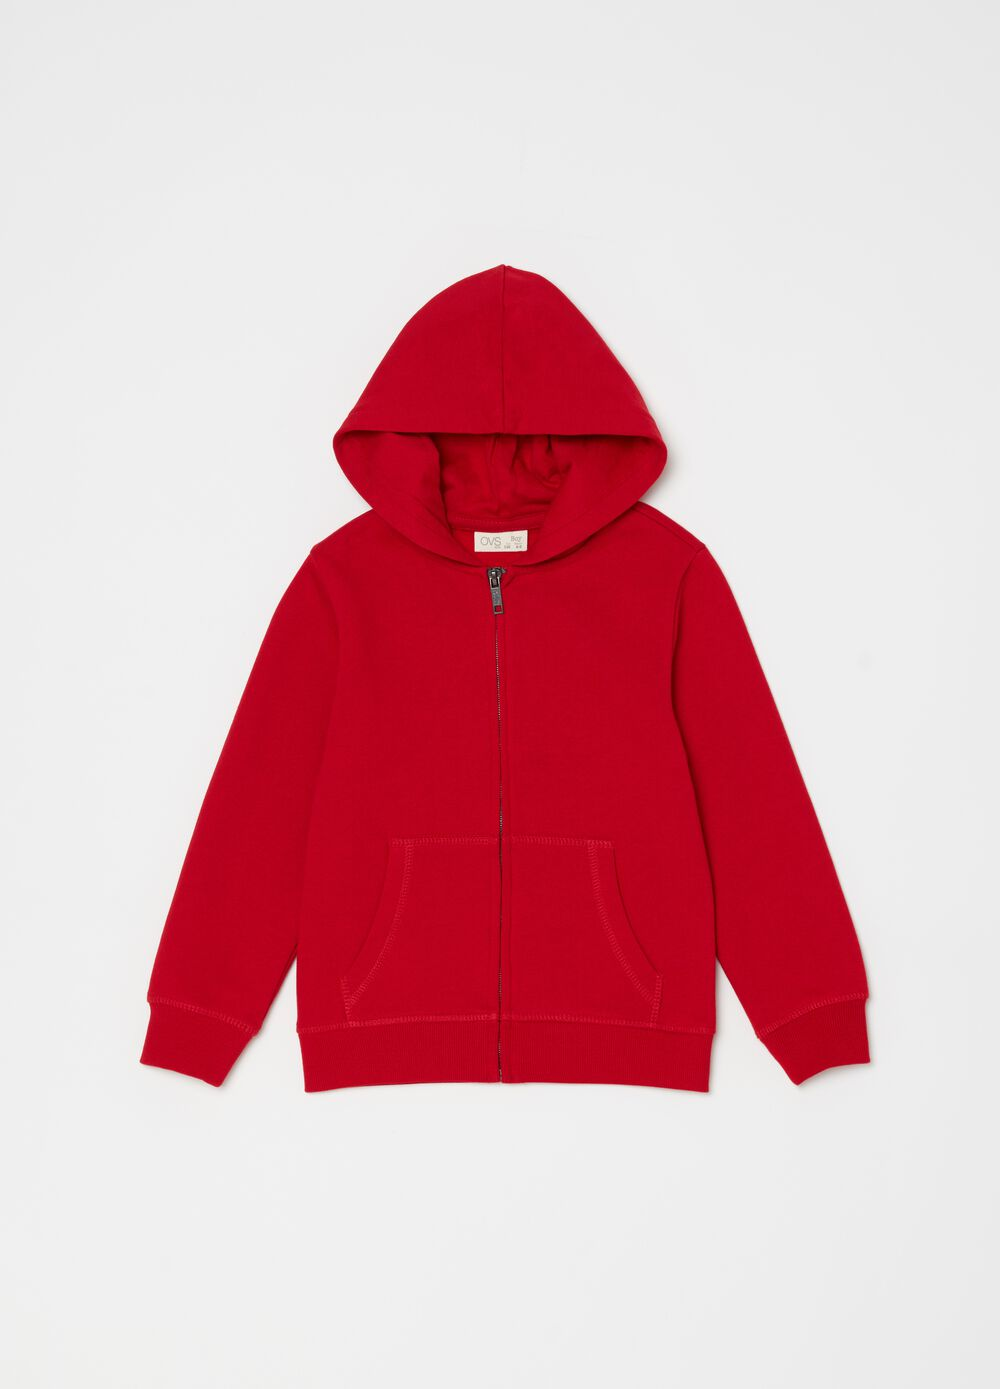 Full-zip sweatshirt with hood and pockets